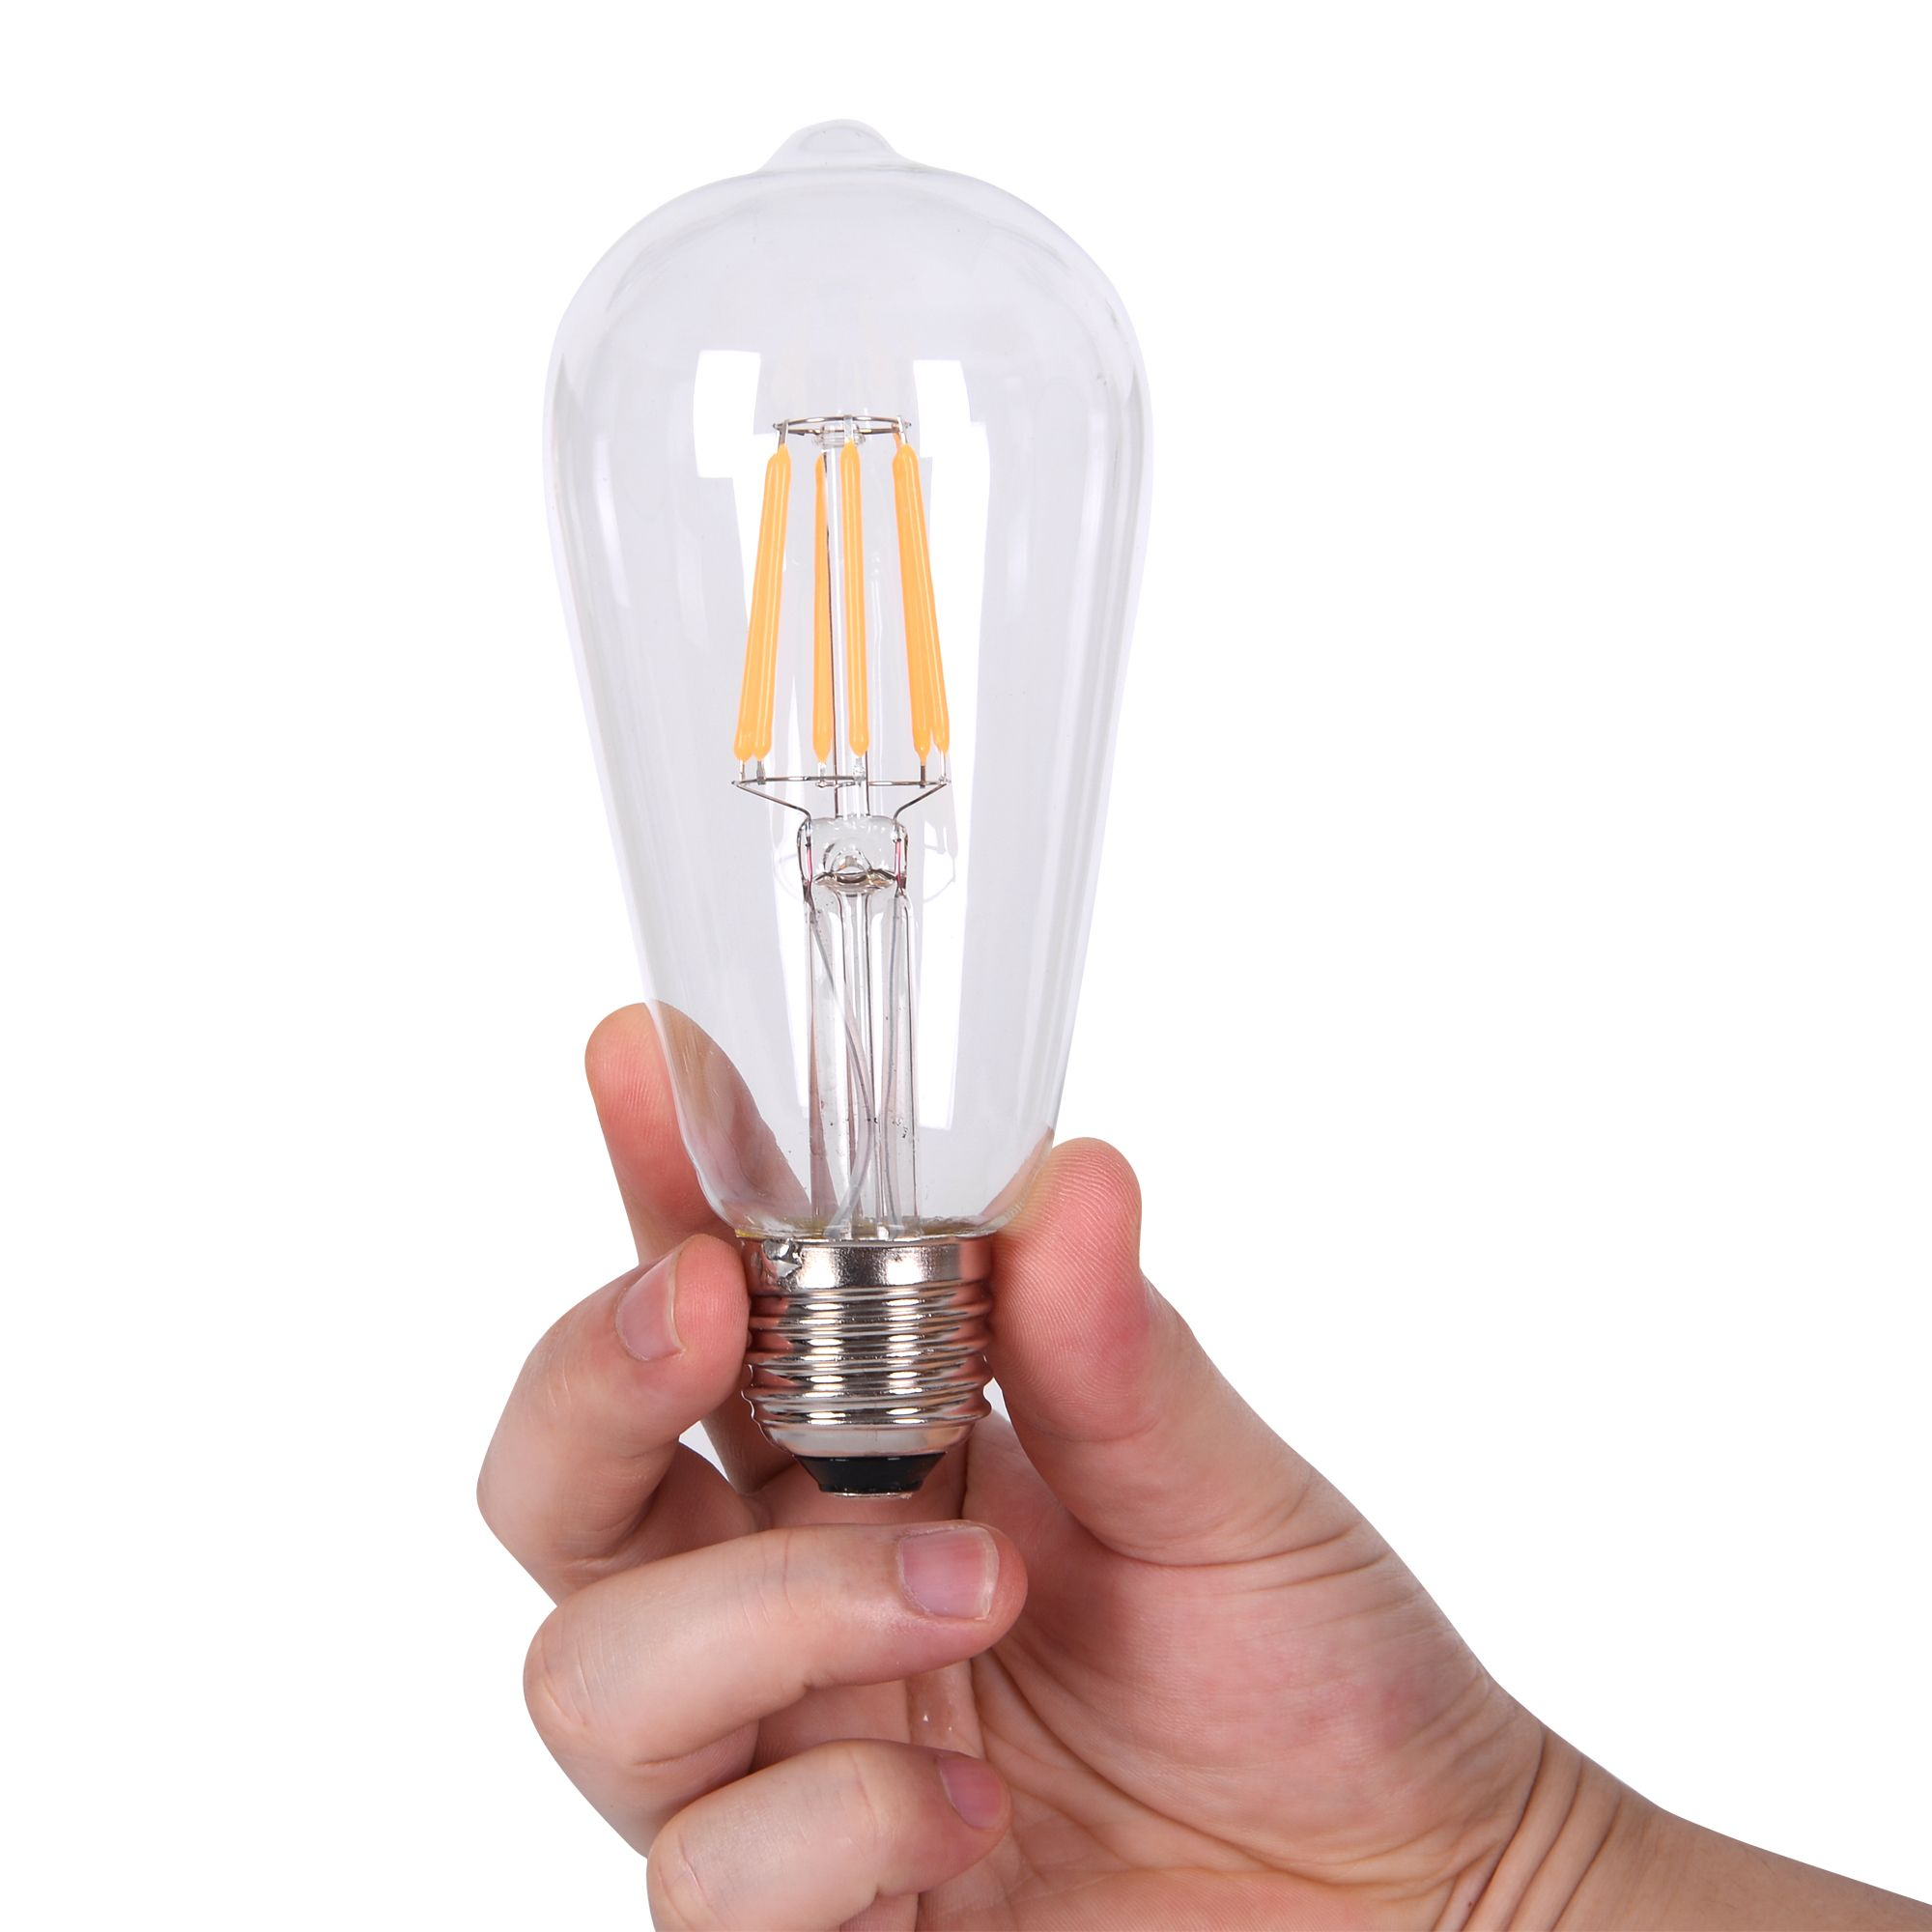 Retro Look With Modern Technology Vintage Edison Led Light Bulbs For Camper Van Dc Systems Bulb Led Light Bulbs Light Bulb